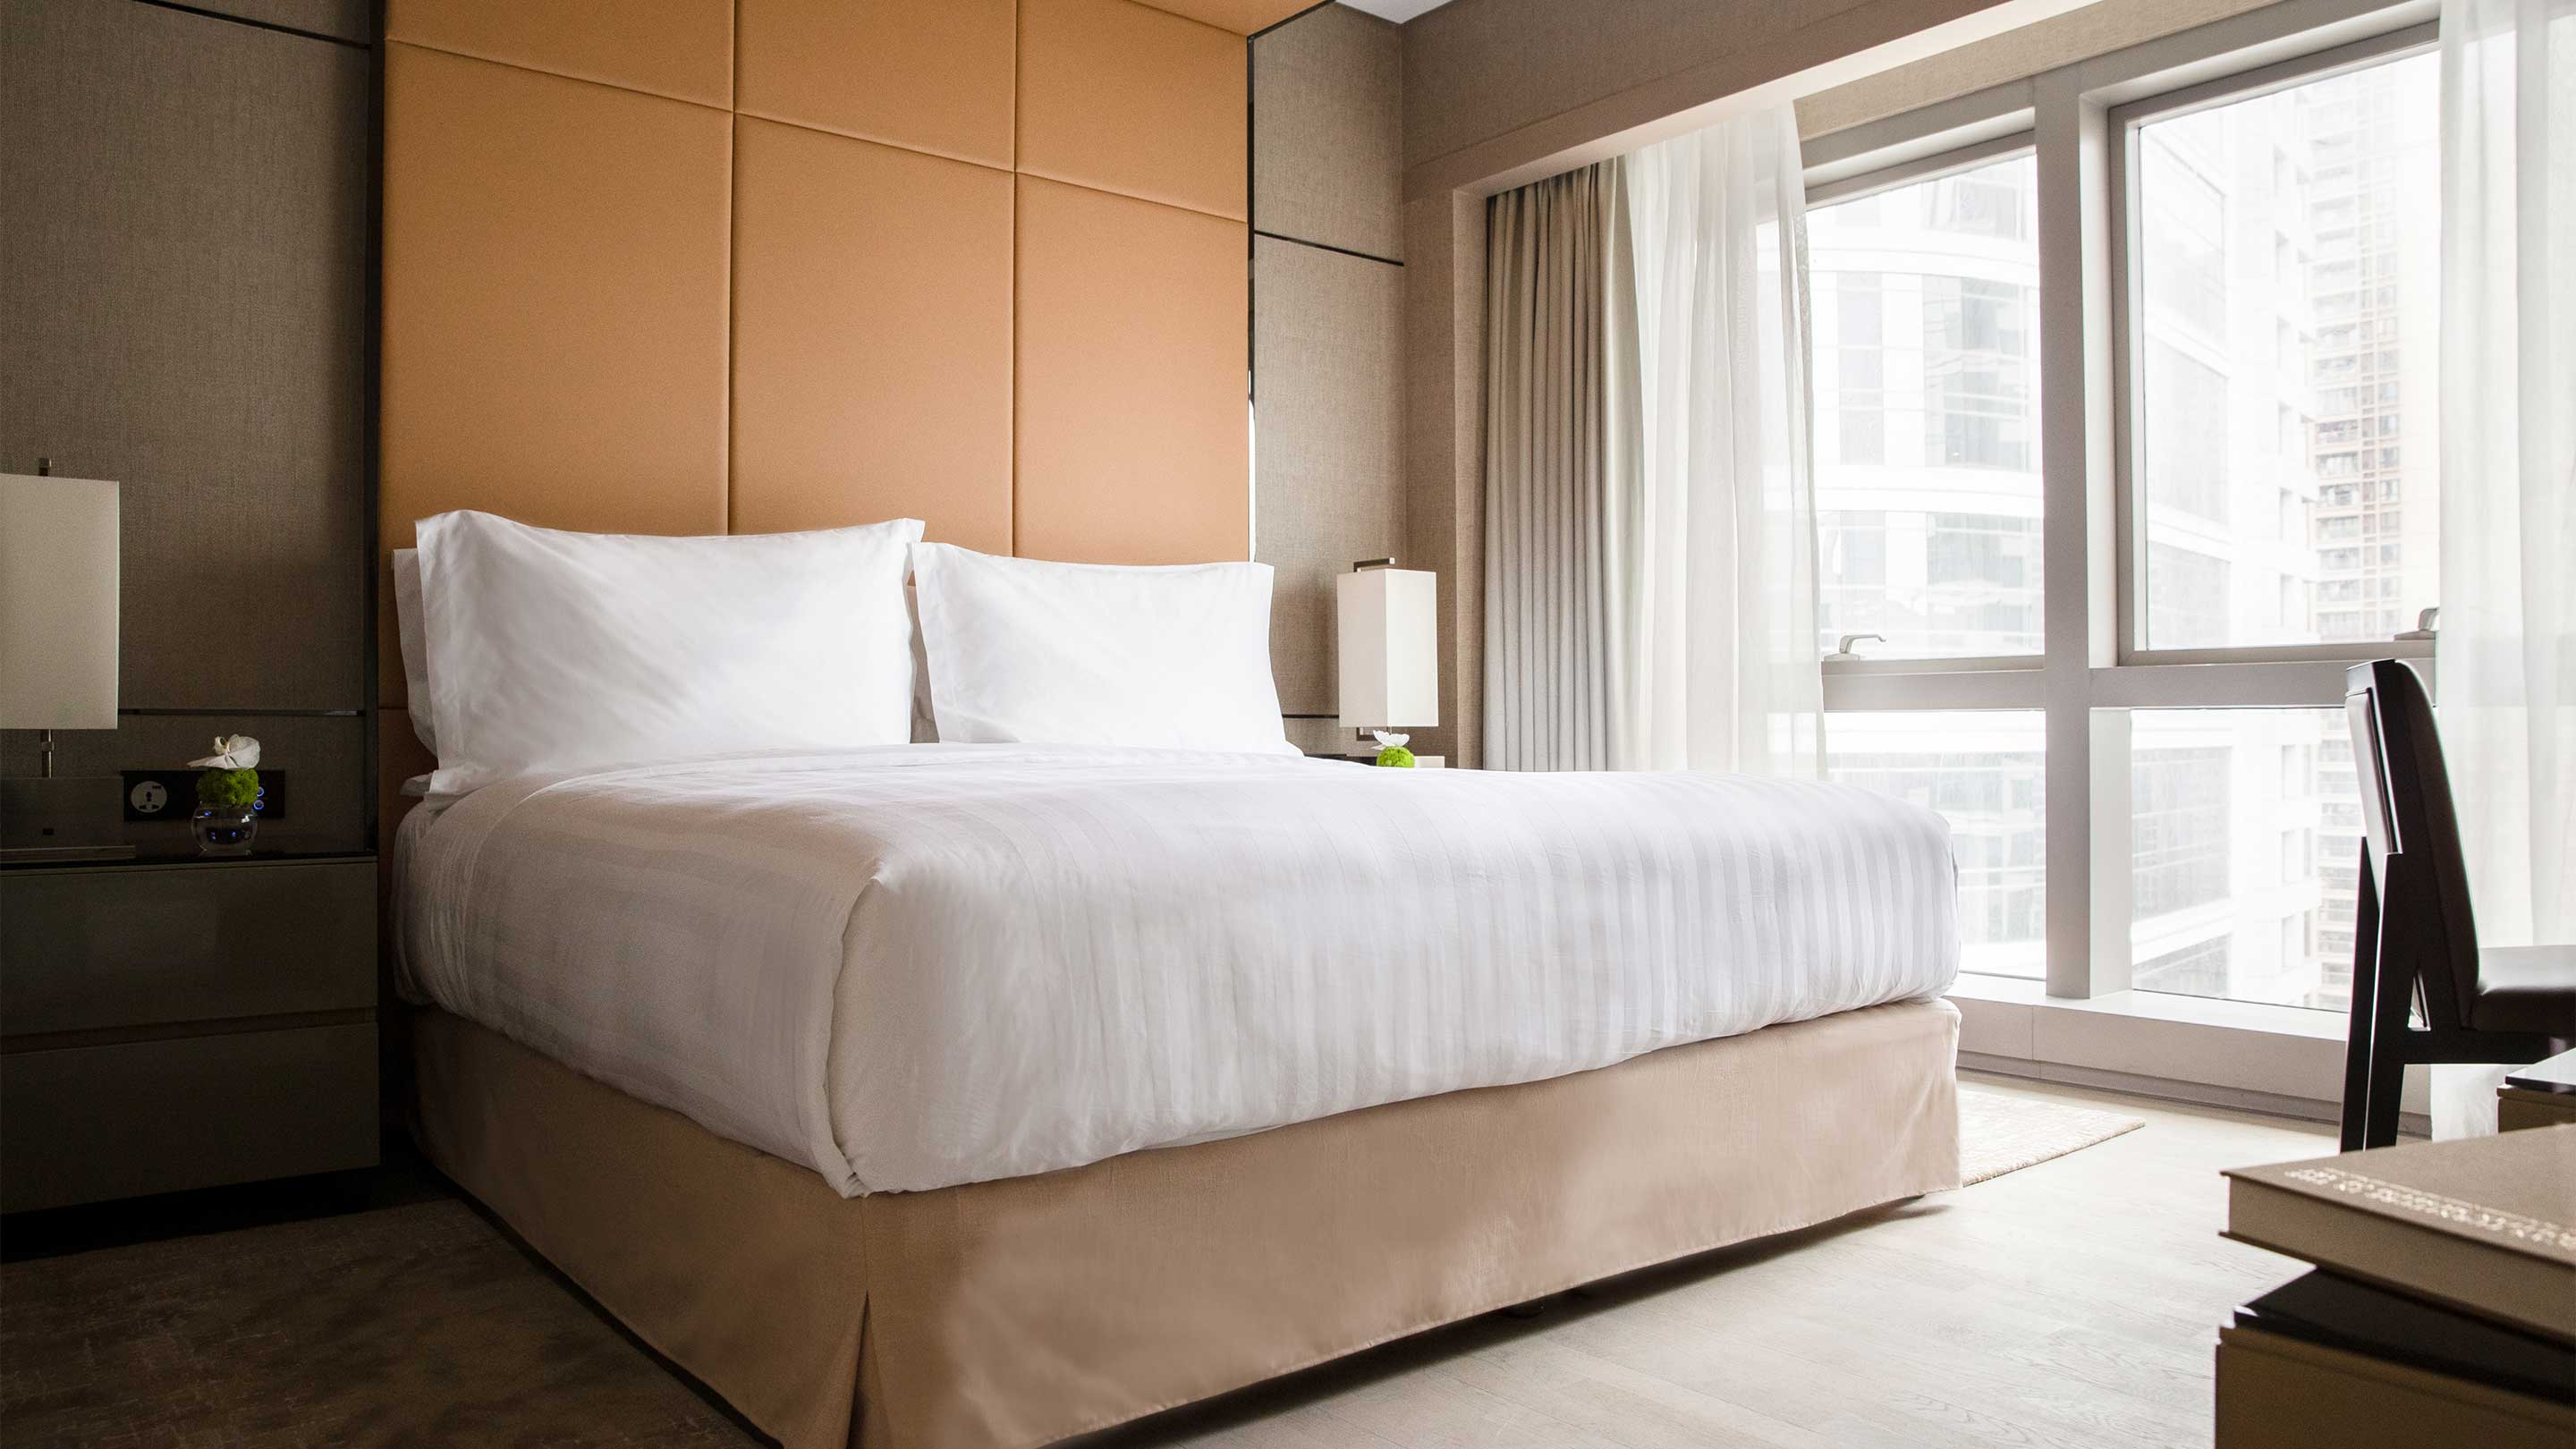 16-9 JUMEIRAH LIVING GUANGZHOU Contemporary 1 bed room suite bed room